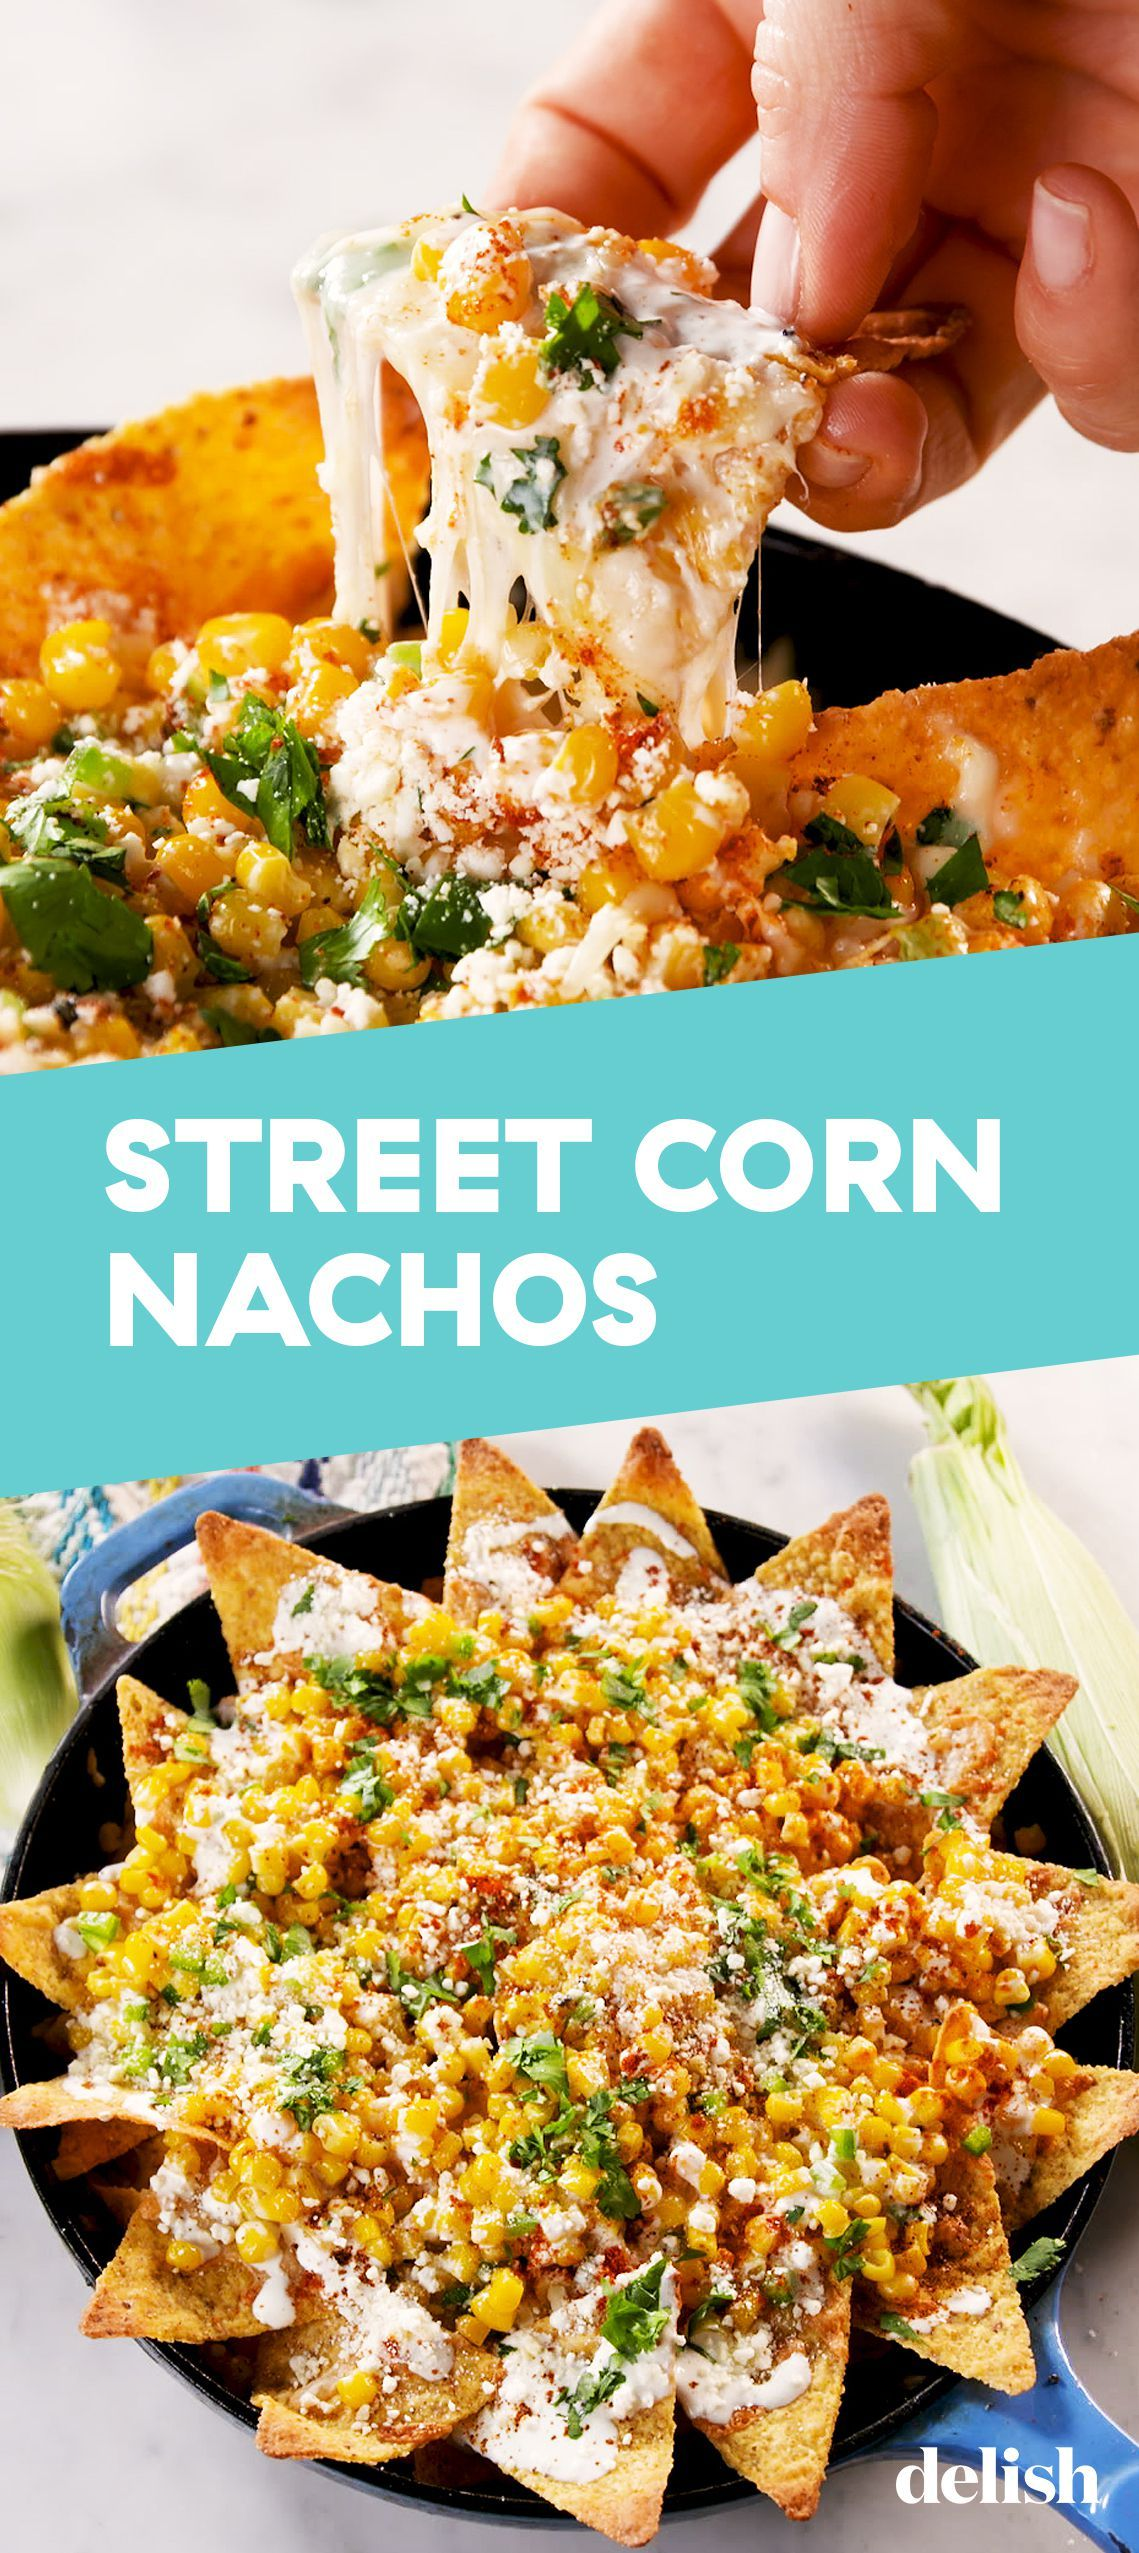 Street Corn Nachos Will Disappear In SECONDSDelish